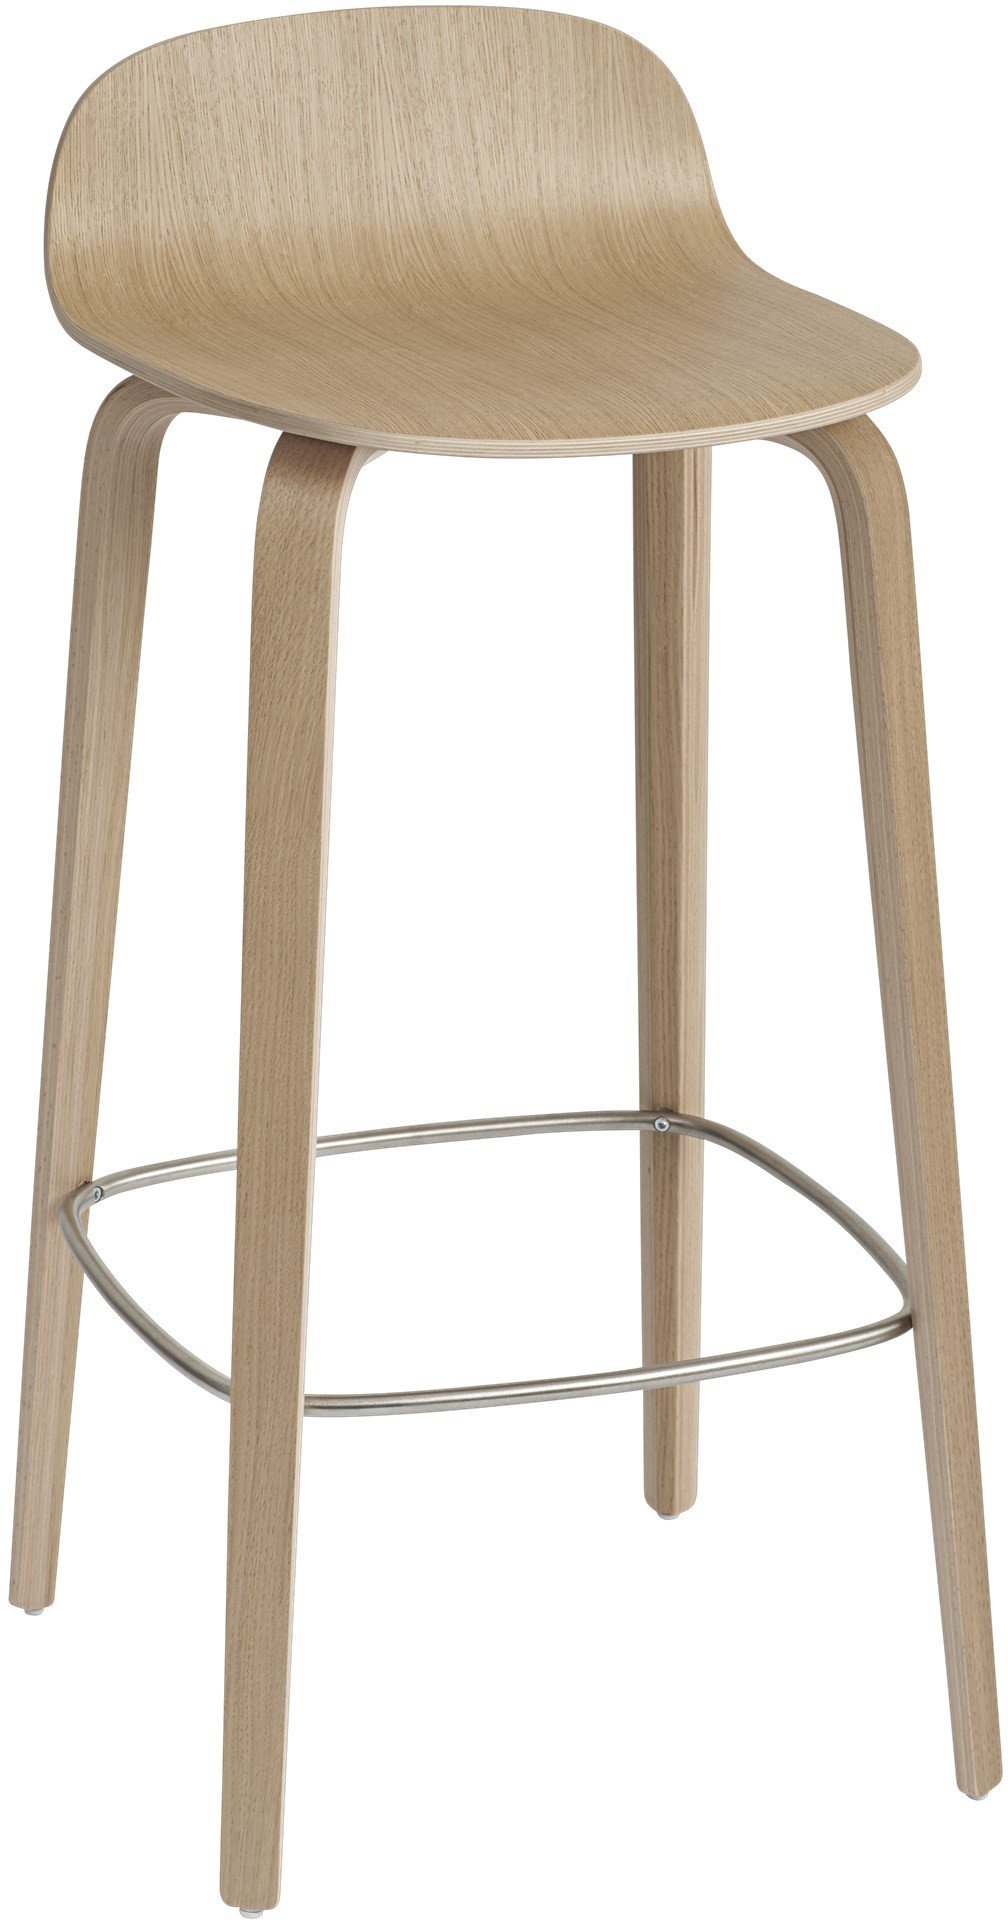 Bar Stool Visu 75 cm Oak by M. Tolvanen for Muuto